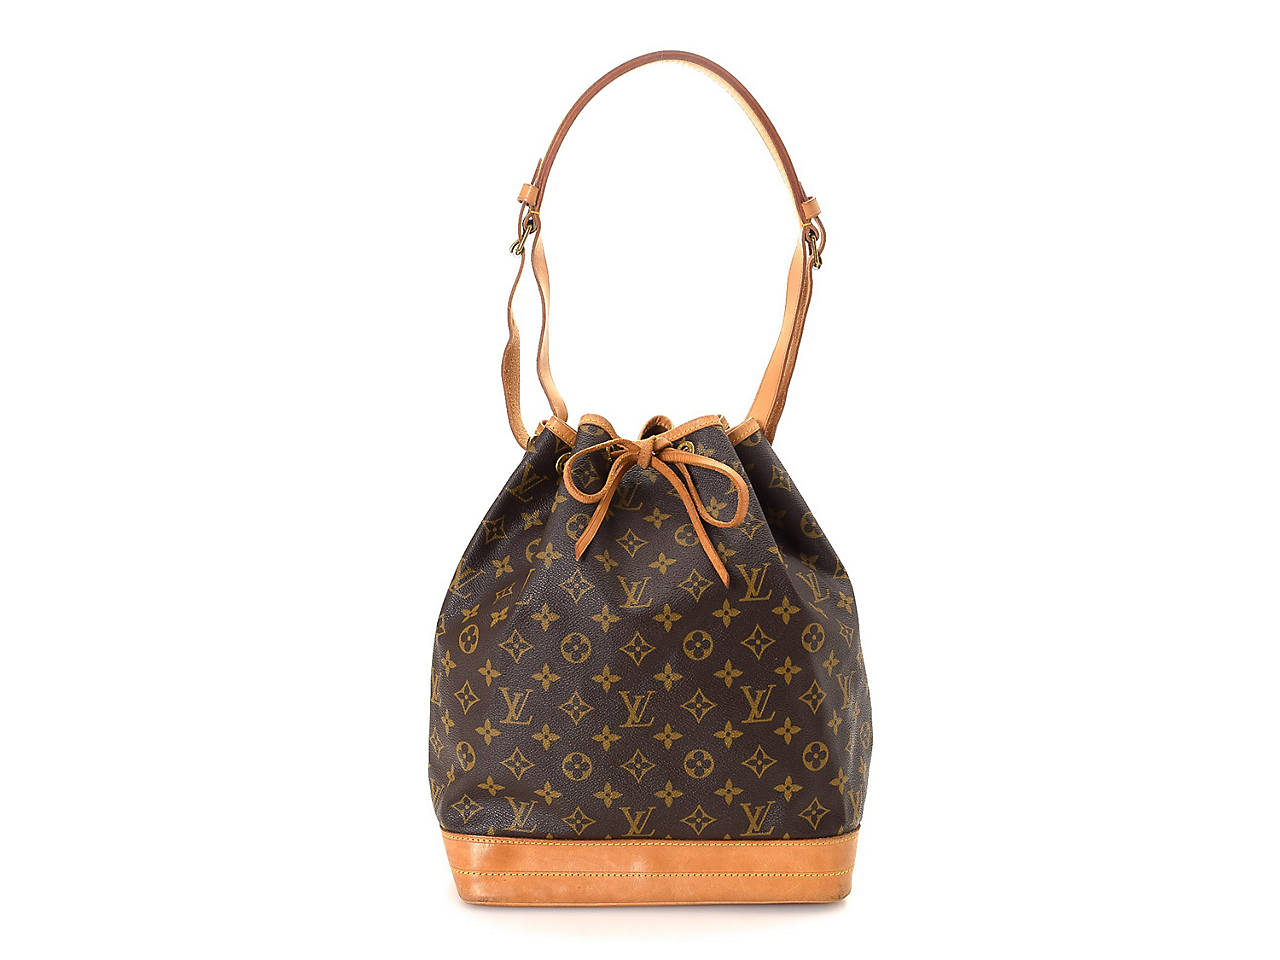 Louis Vuitton - Vintage Luxury Noe Bucket Bag Women s Handbags ... 80df9e61748d5